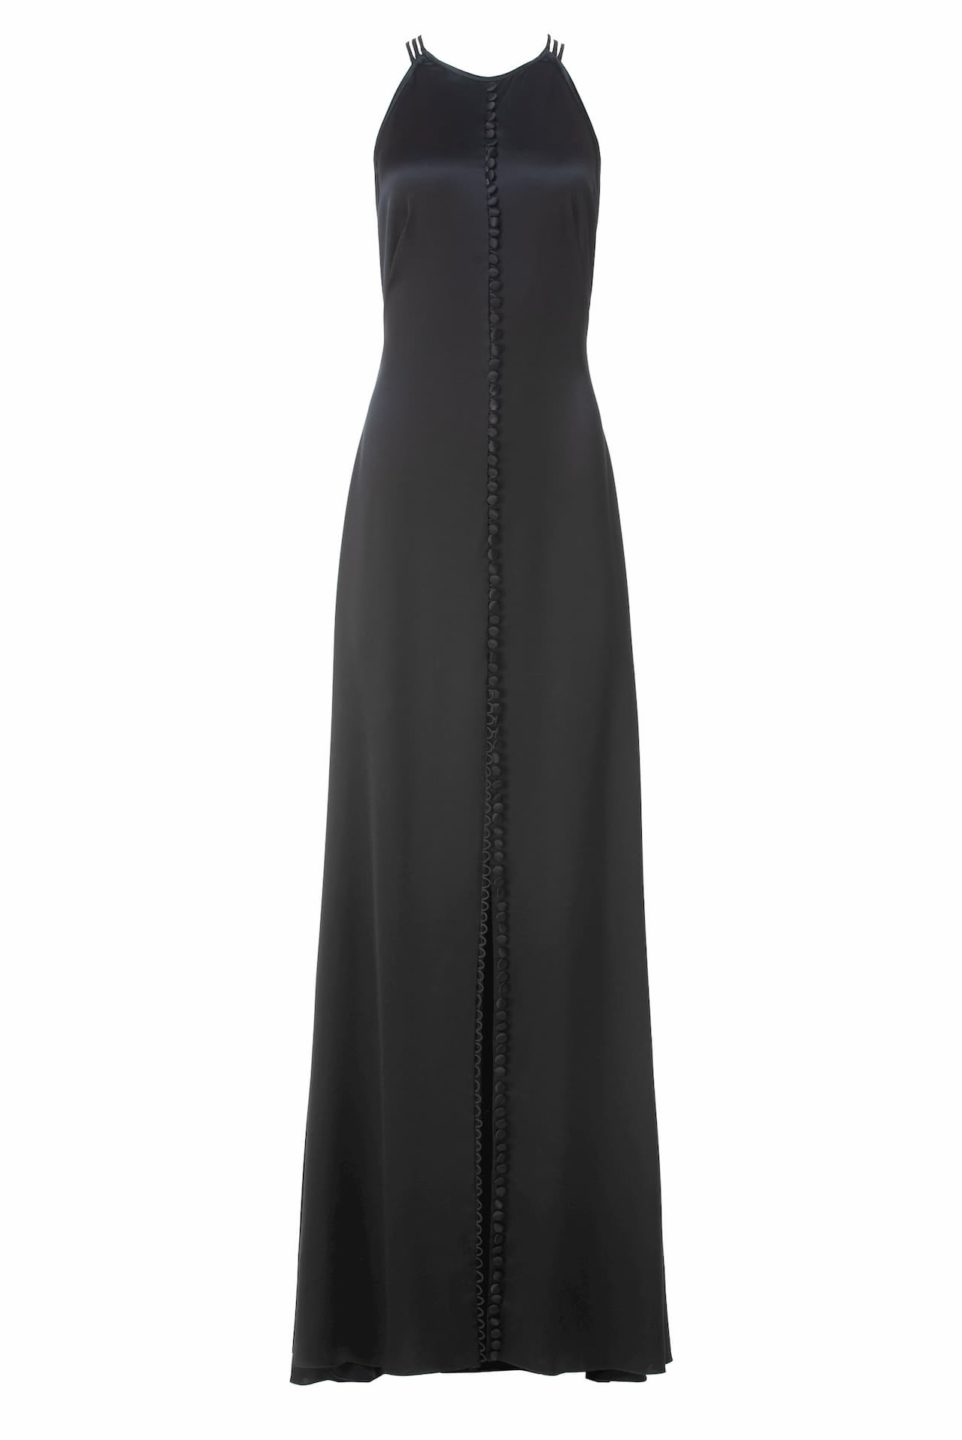 Gyllene PS2141 Black Satin Button-Detailed Slip Dress with HalterNeckline & Cross Backline